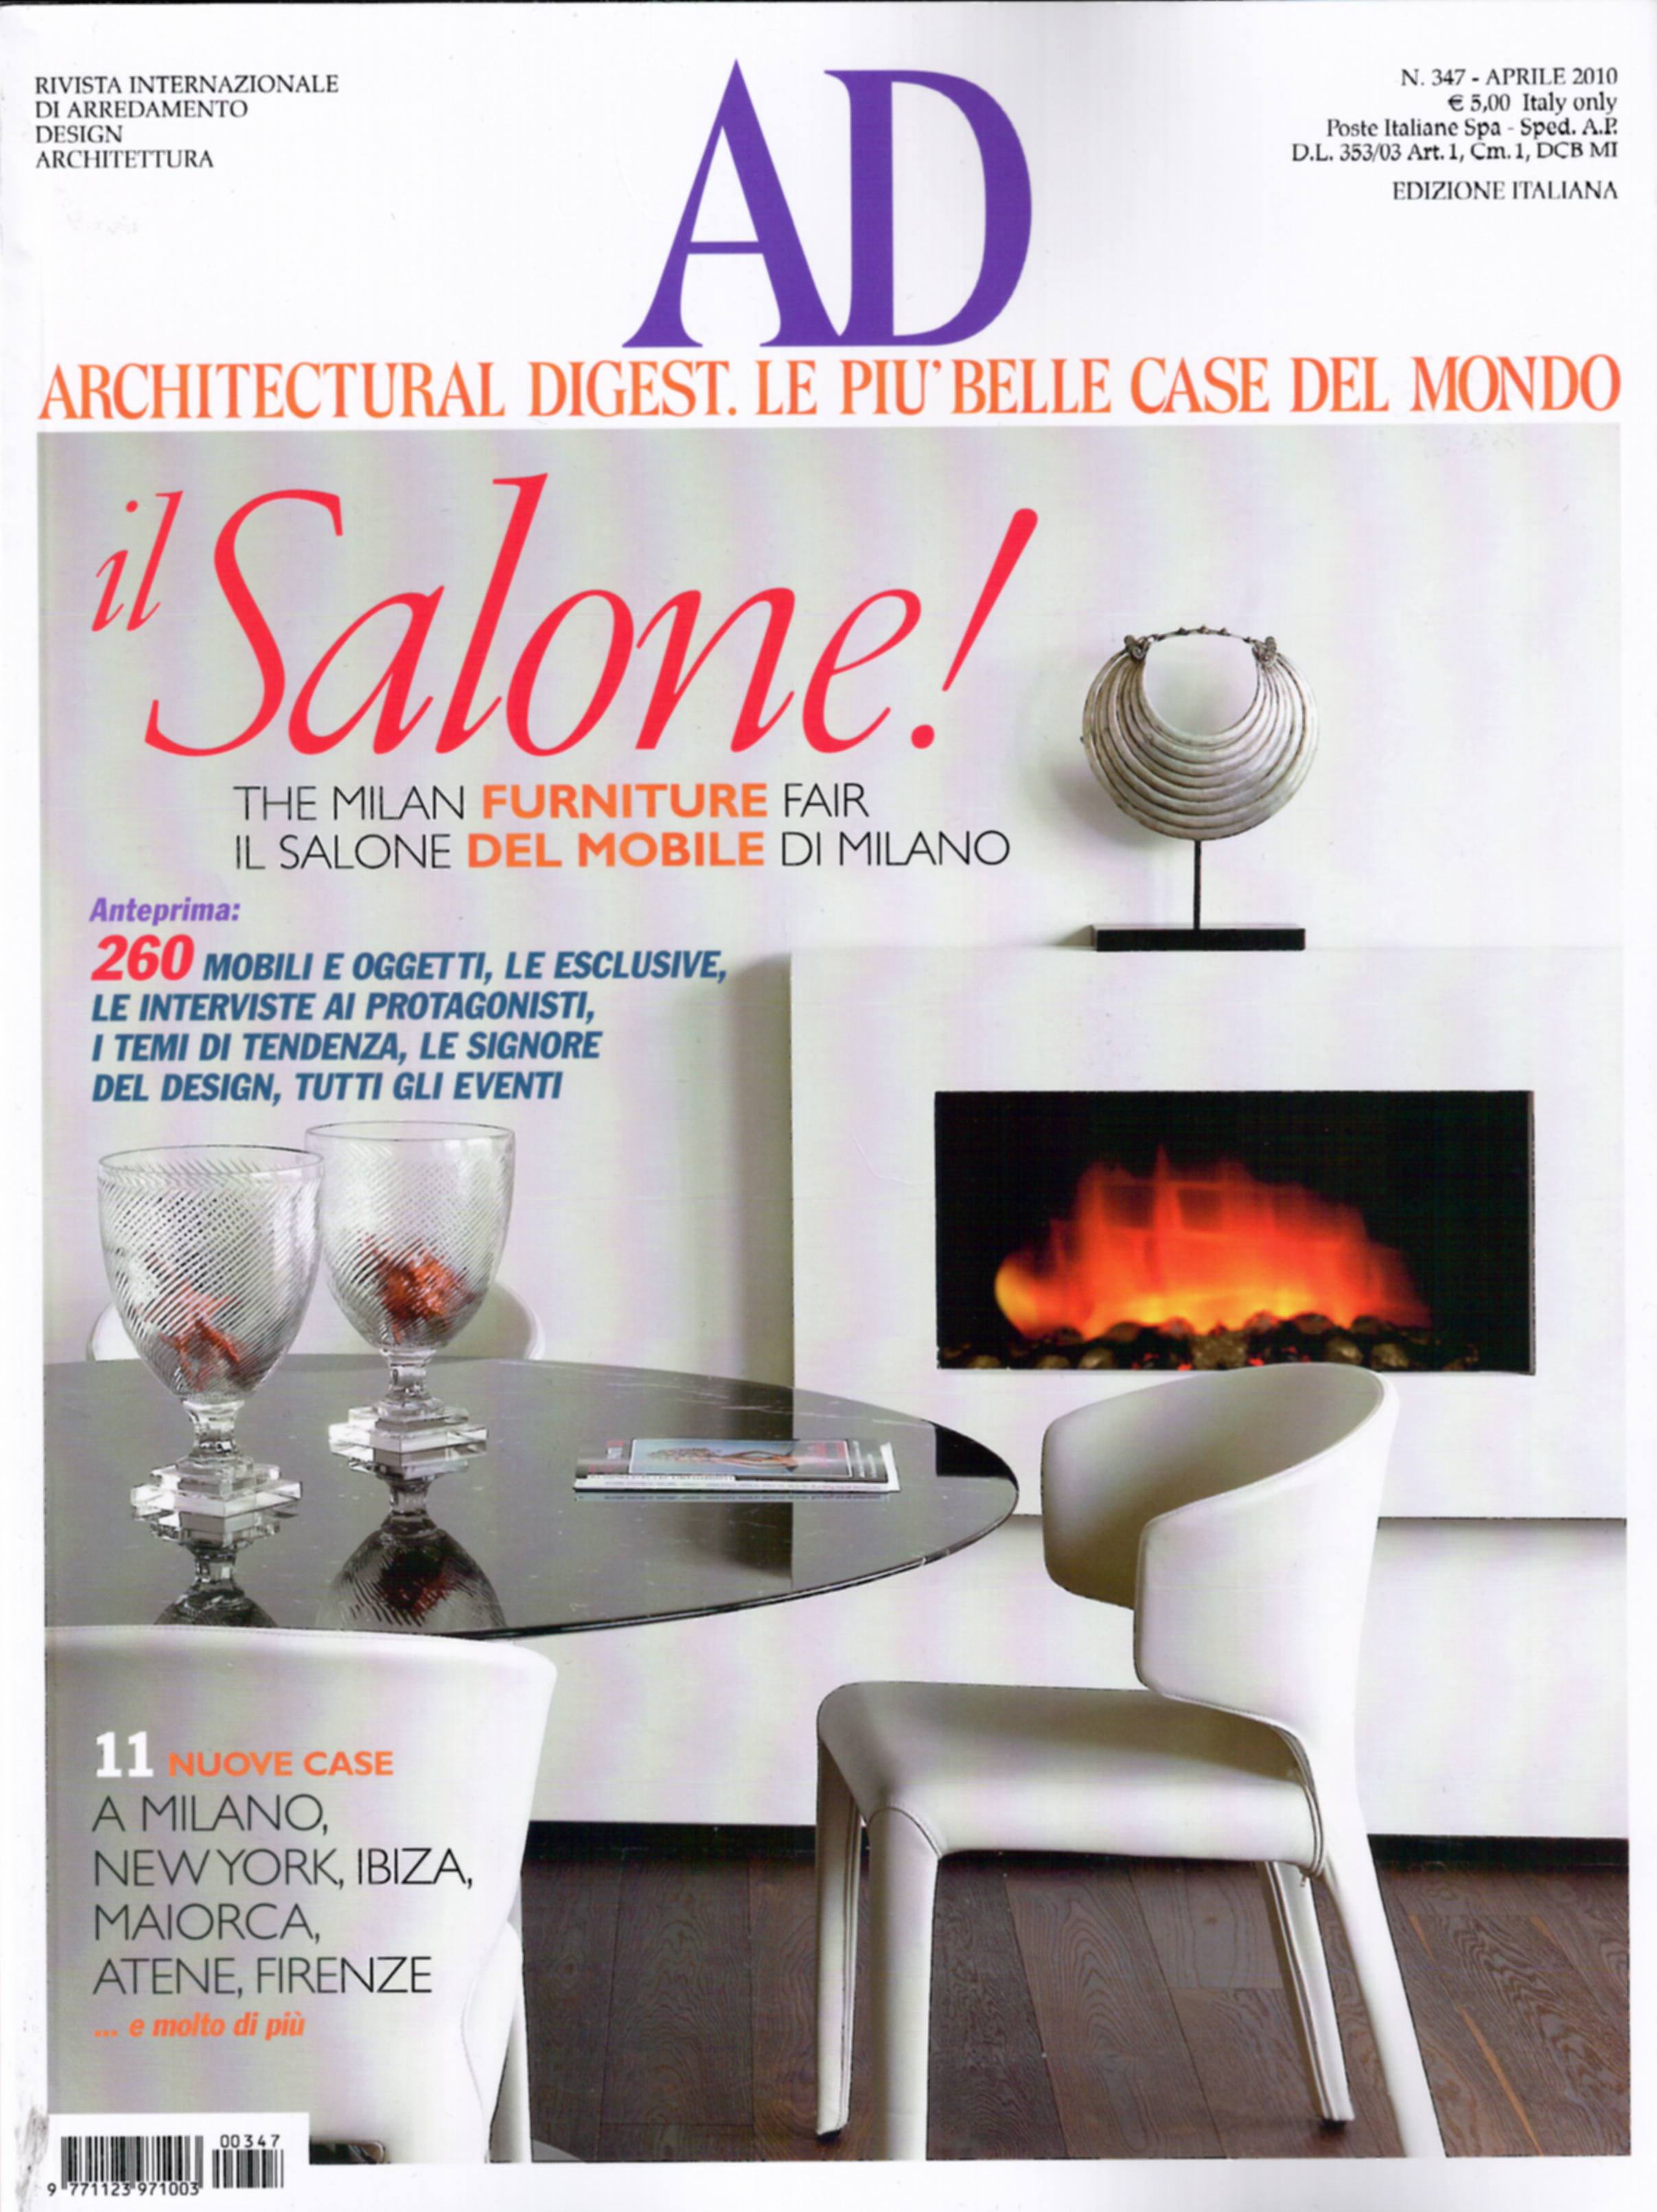 Le migliori riviste di arredamento helle kitchen for Art e decoration rivista